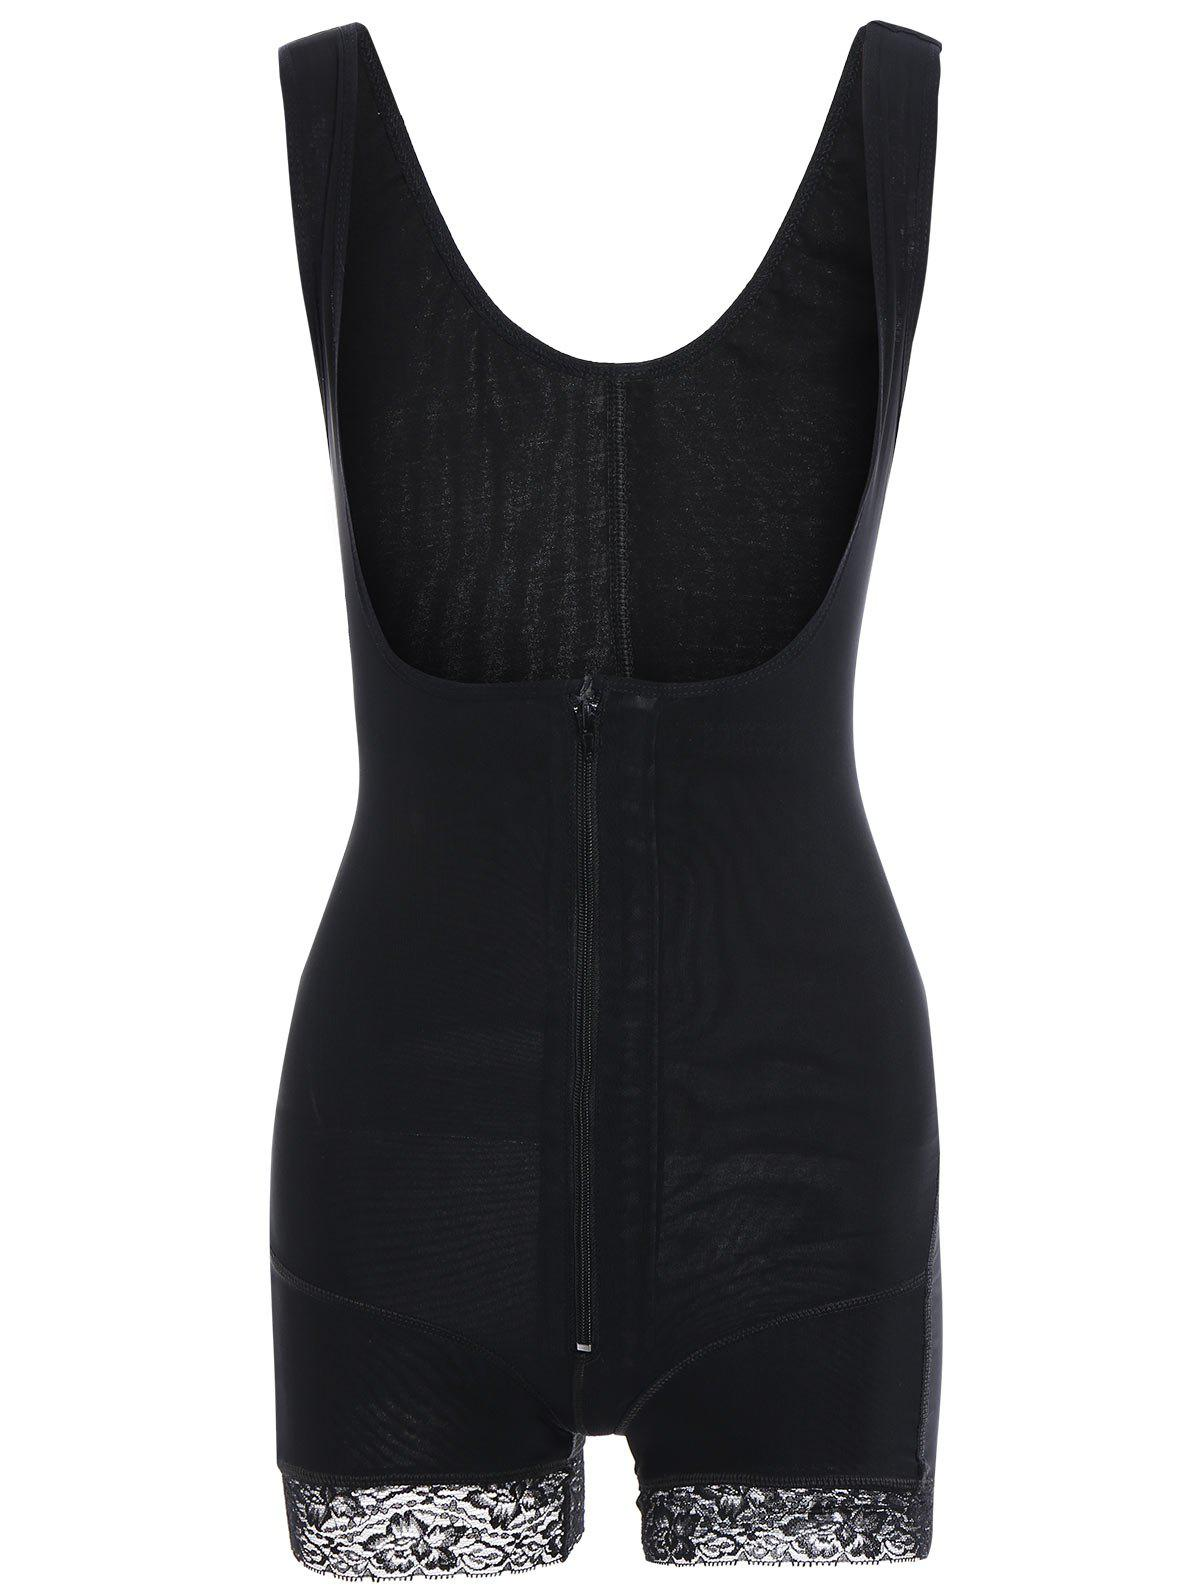 Steel Boned Zipper Fly Body ShaperWOMEN<br><br>Size: 2XL; Color: BLACK; Material: Polyester; Pattern Type: Solid; Embellishment: Lace,Zippers; Weight: 0.2000kg; Package Contents: 1 x Body Shaper;